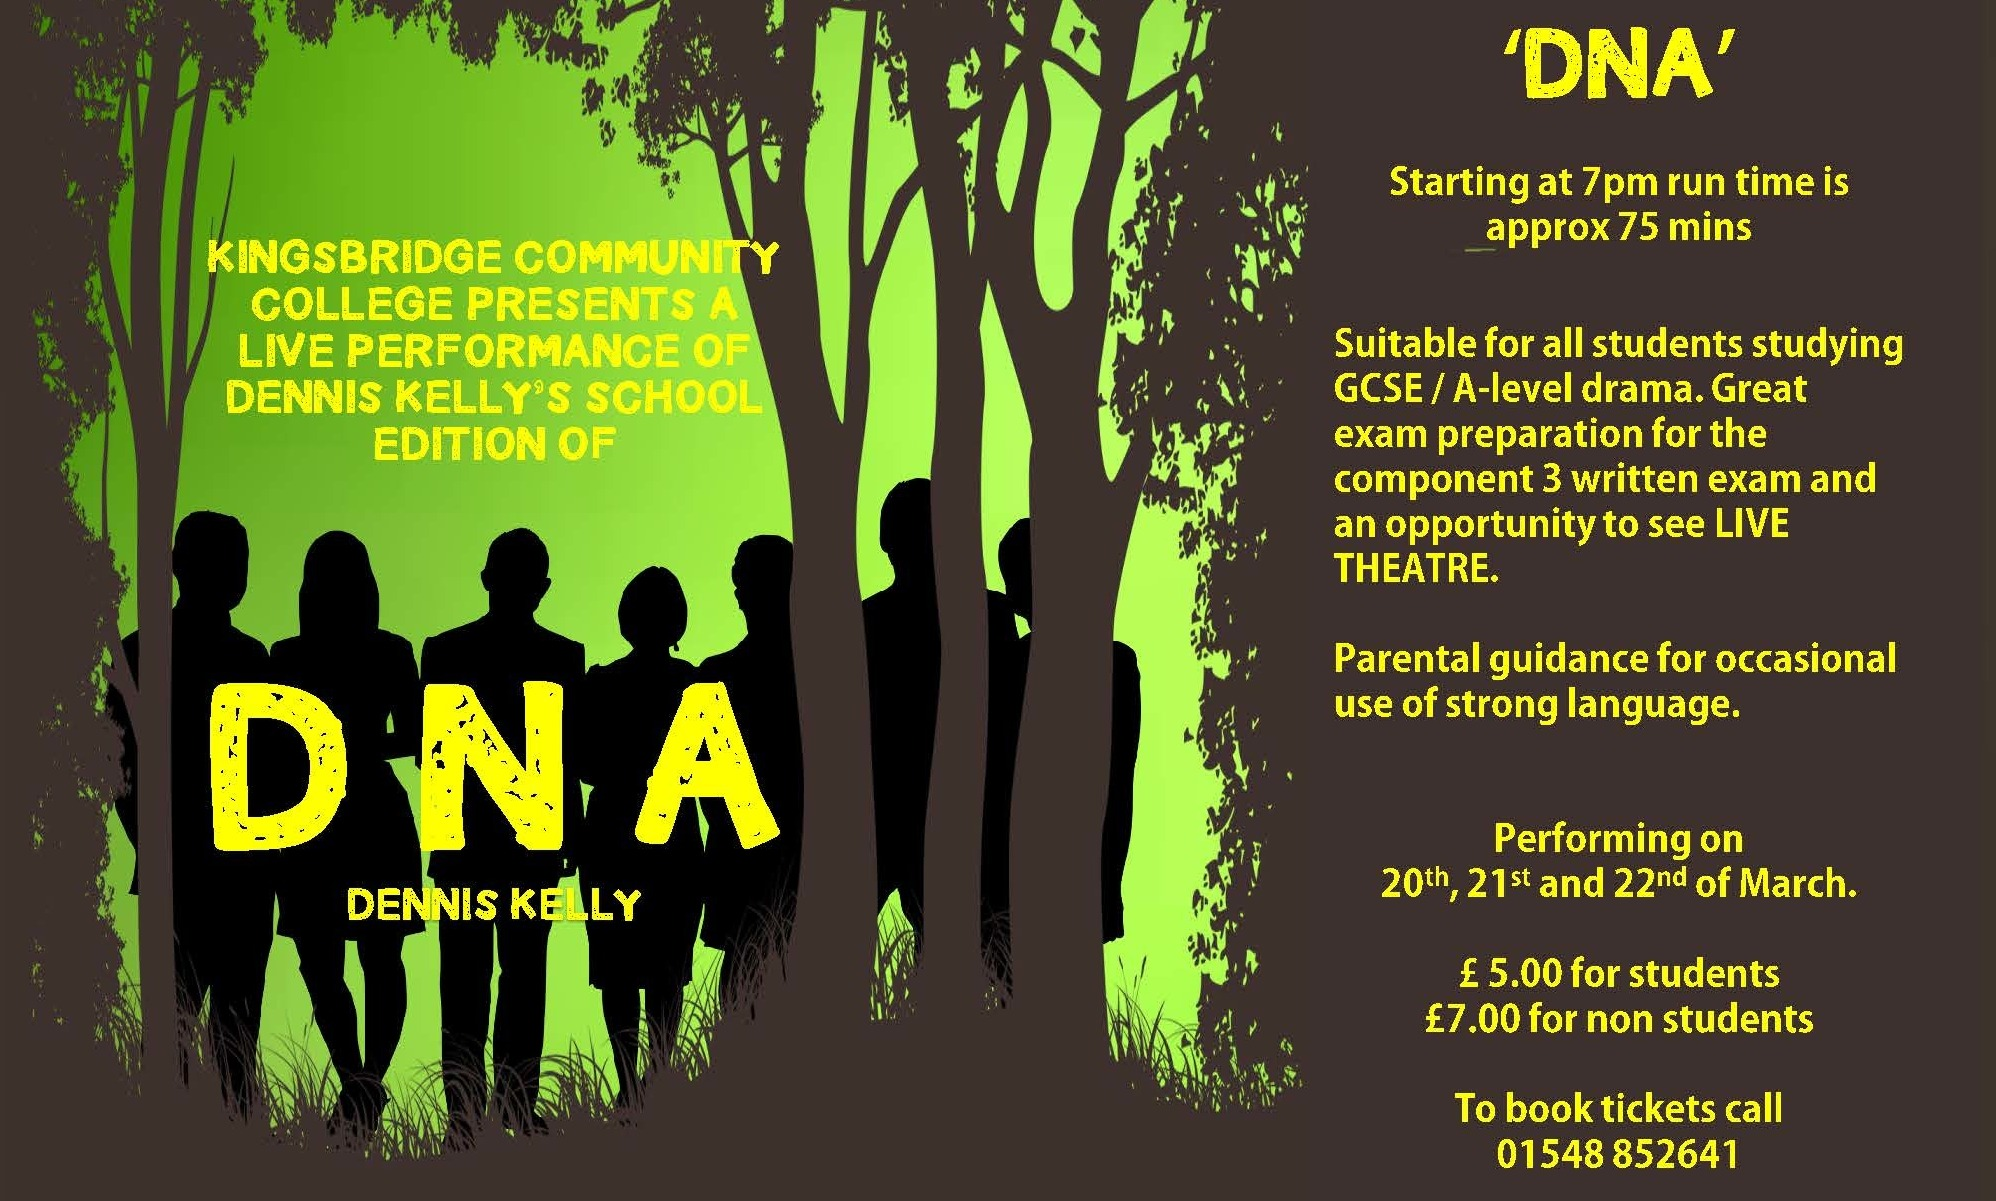 Kingsbridge Community College presents a live performance of Dennis Kelly's school edition of DNA